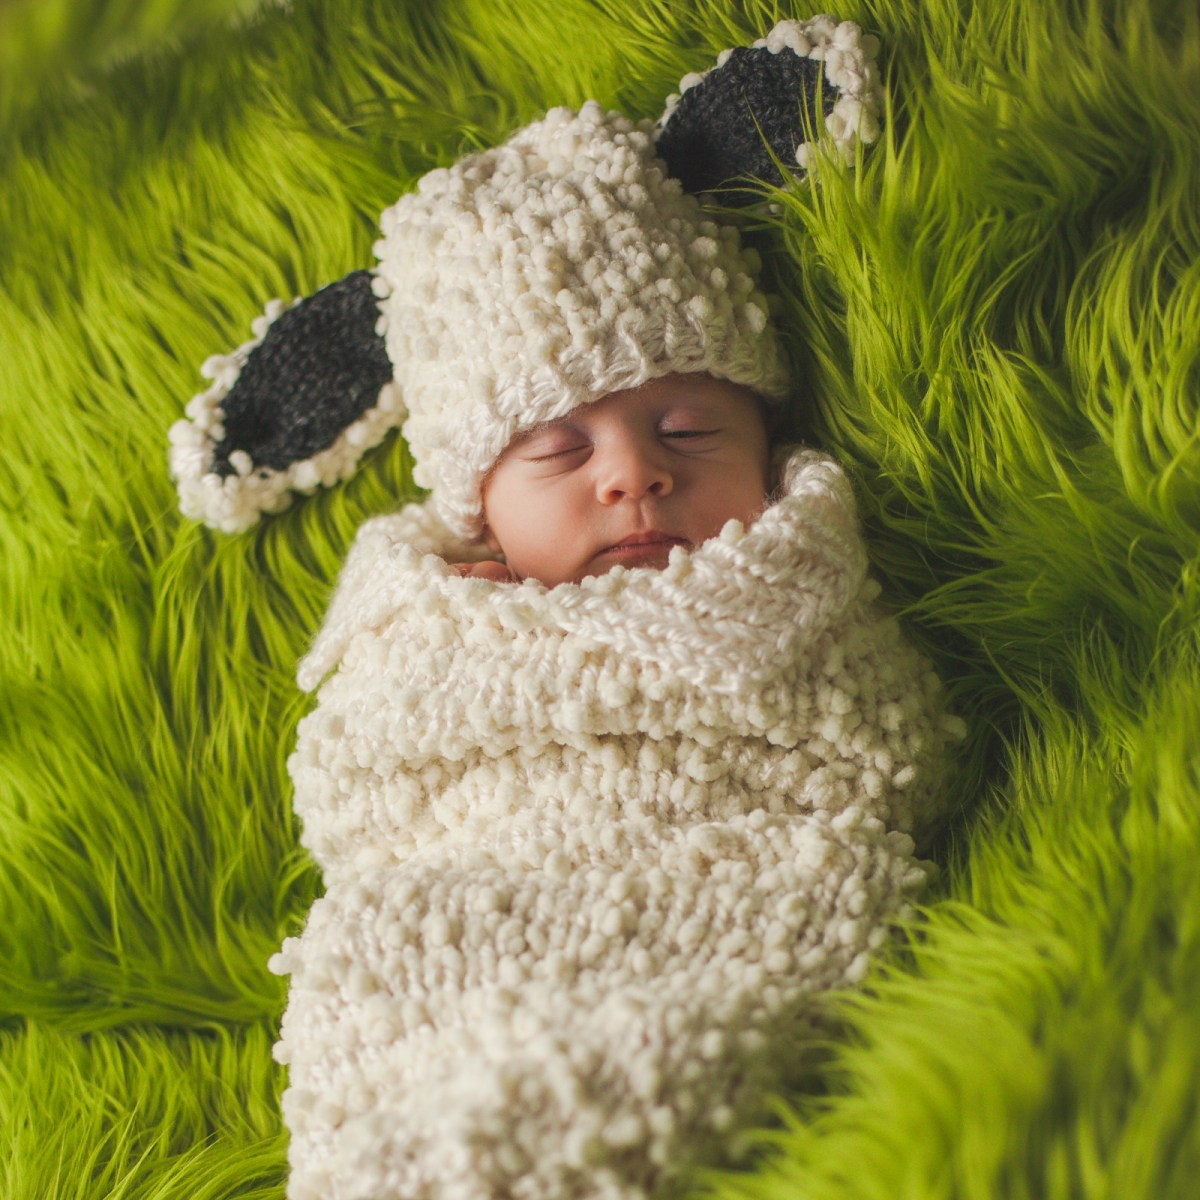 Crochet Cocoon Patterns For Newborns Lil Lamb Cocoon And Hat Pattern Set This Moment Is Good